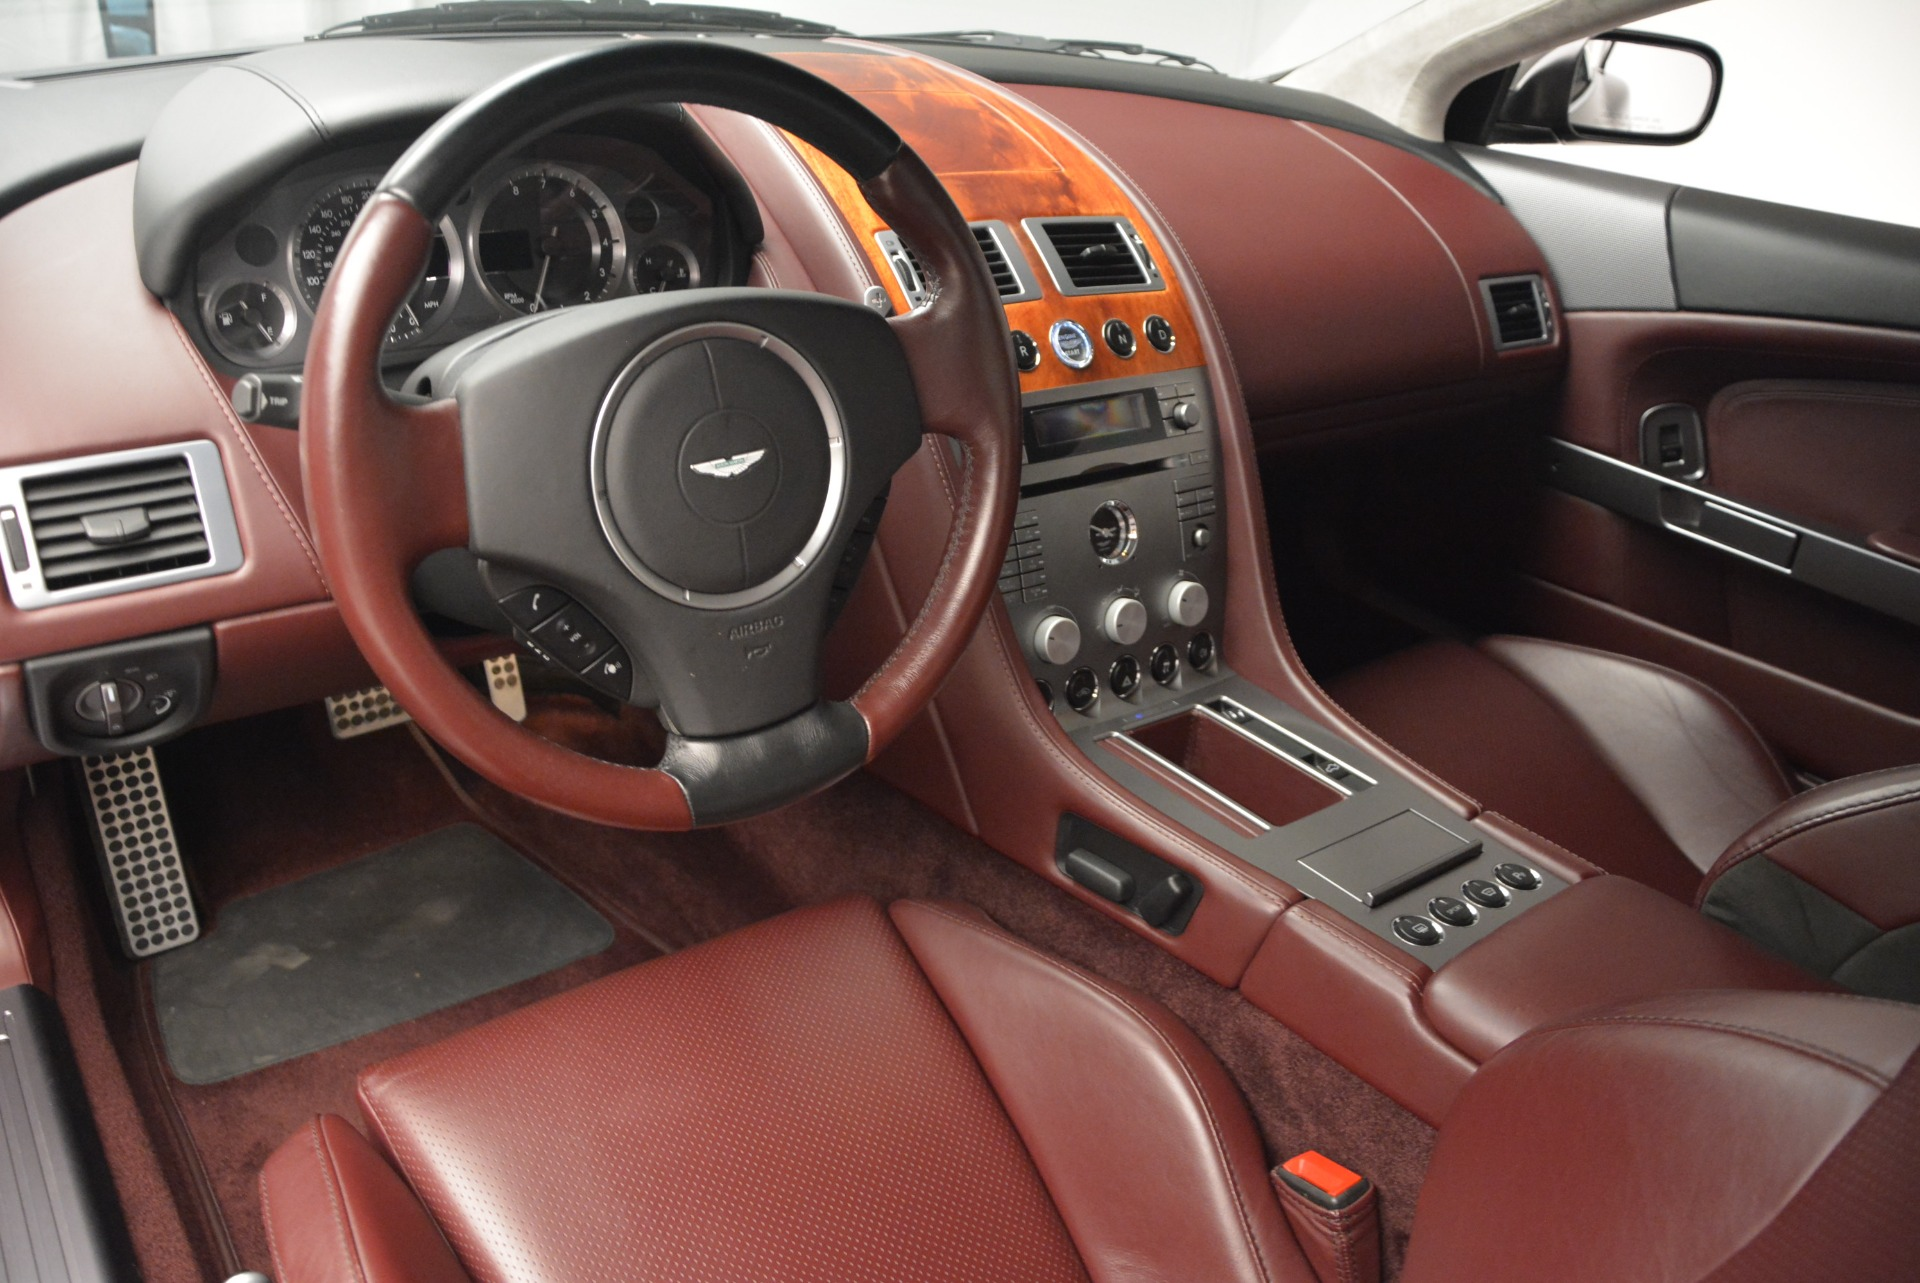 Used 2006 Aston Martin DB9 Coupe For Sale In Westport, CT 2832_p14